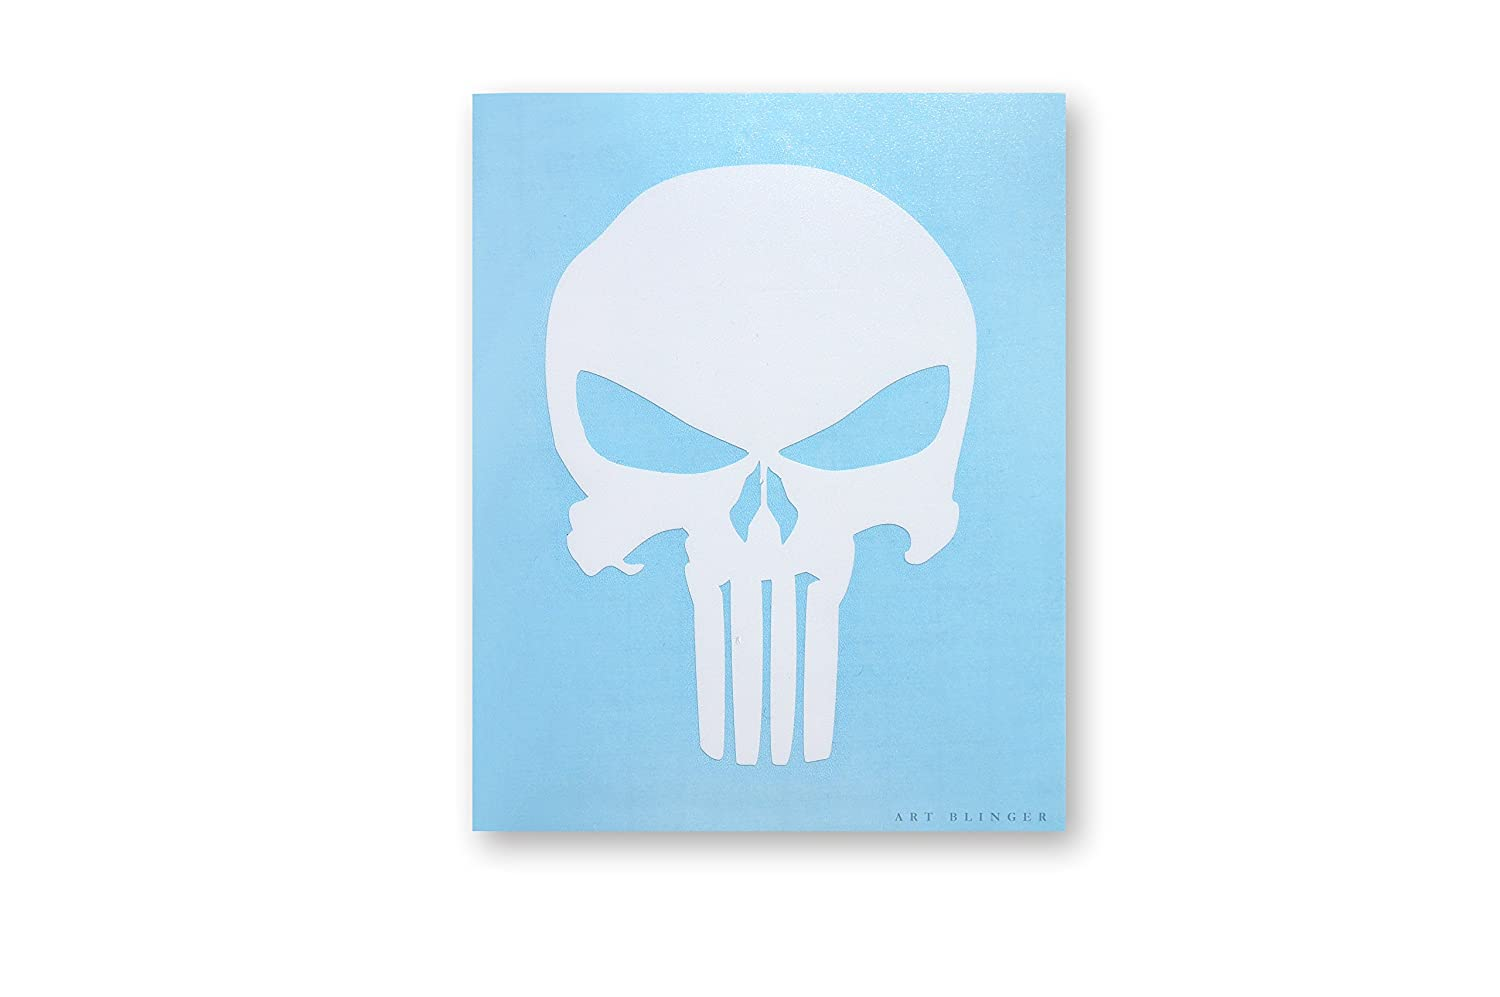 The PUNISHER SKULL CRÁ NEO White Blanco Rub-On Frote-On STICKER ETIQUETA Marvel Comics Officially Licensed Movie & TV Artwork, 5.75' x 4.5' - Long Lasting STICKER ETIQUETA 5.75 x 4.5 - Long Lasting STICKER ETIQUETA